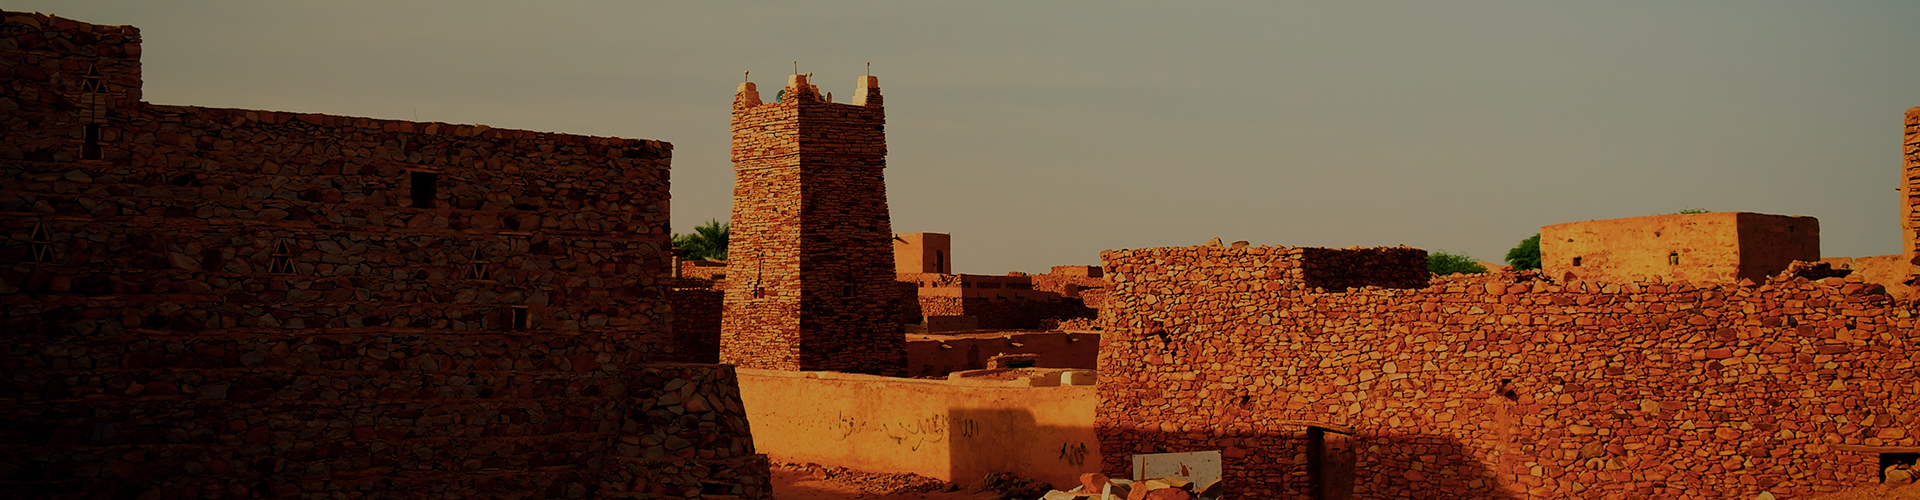 Landmark photograph of Mauritania